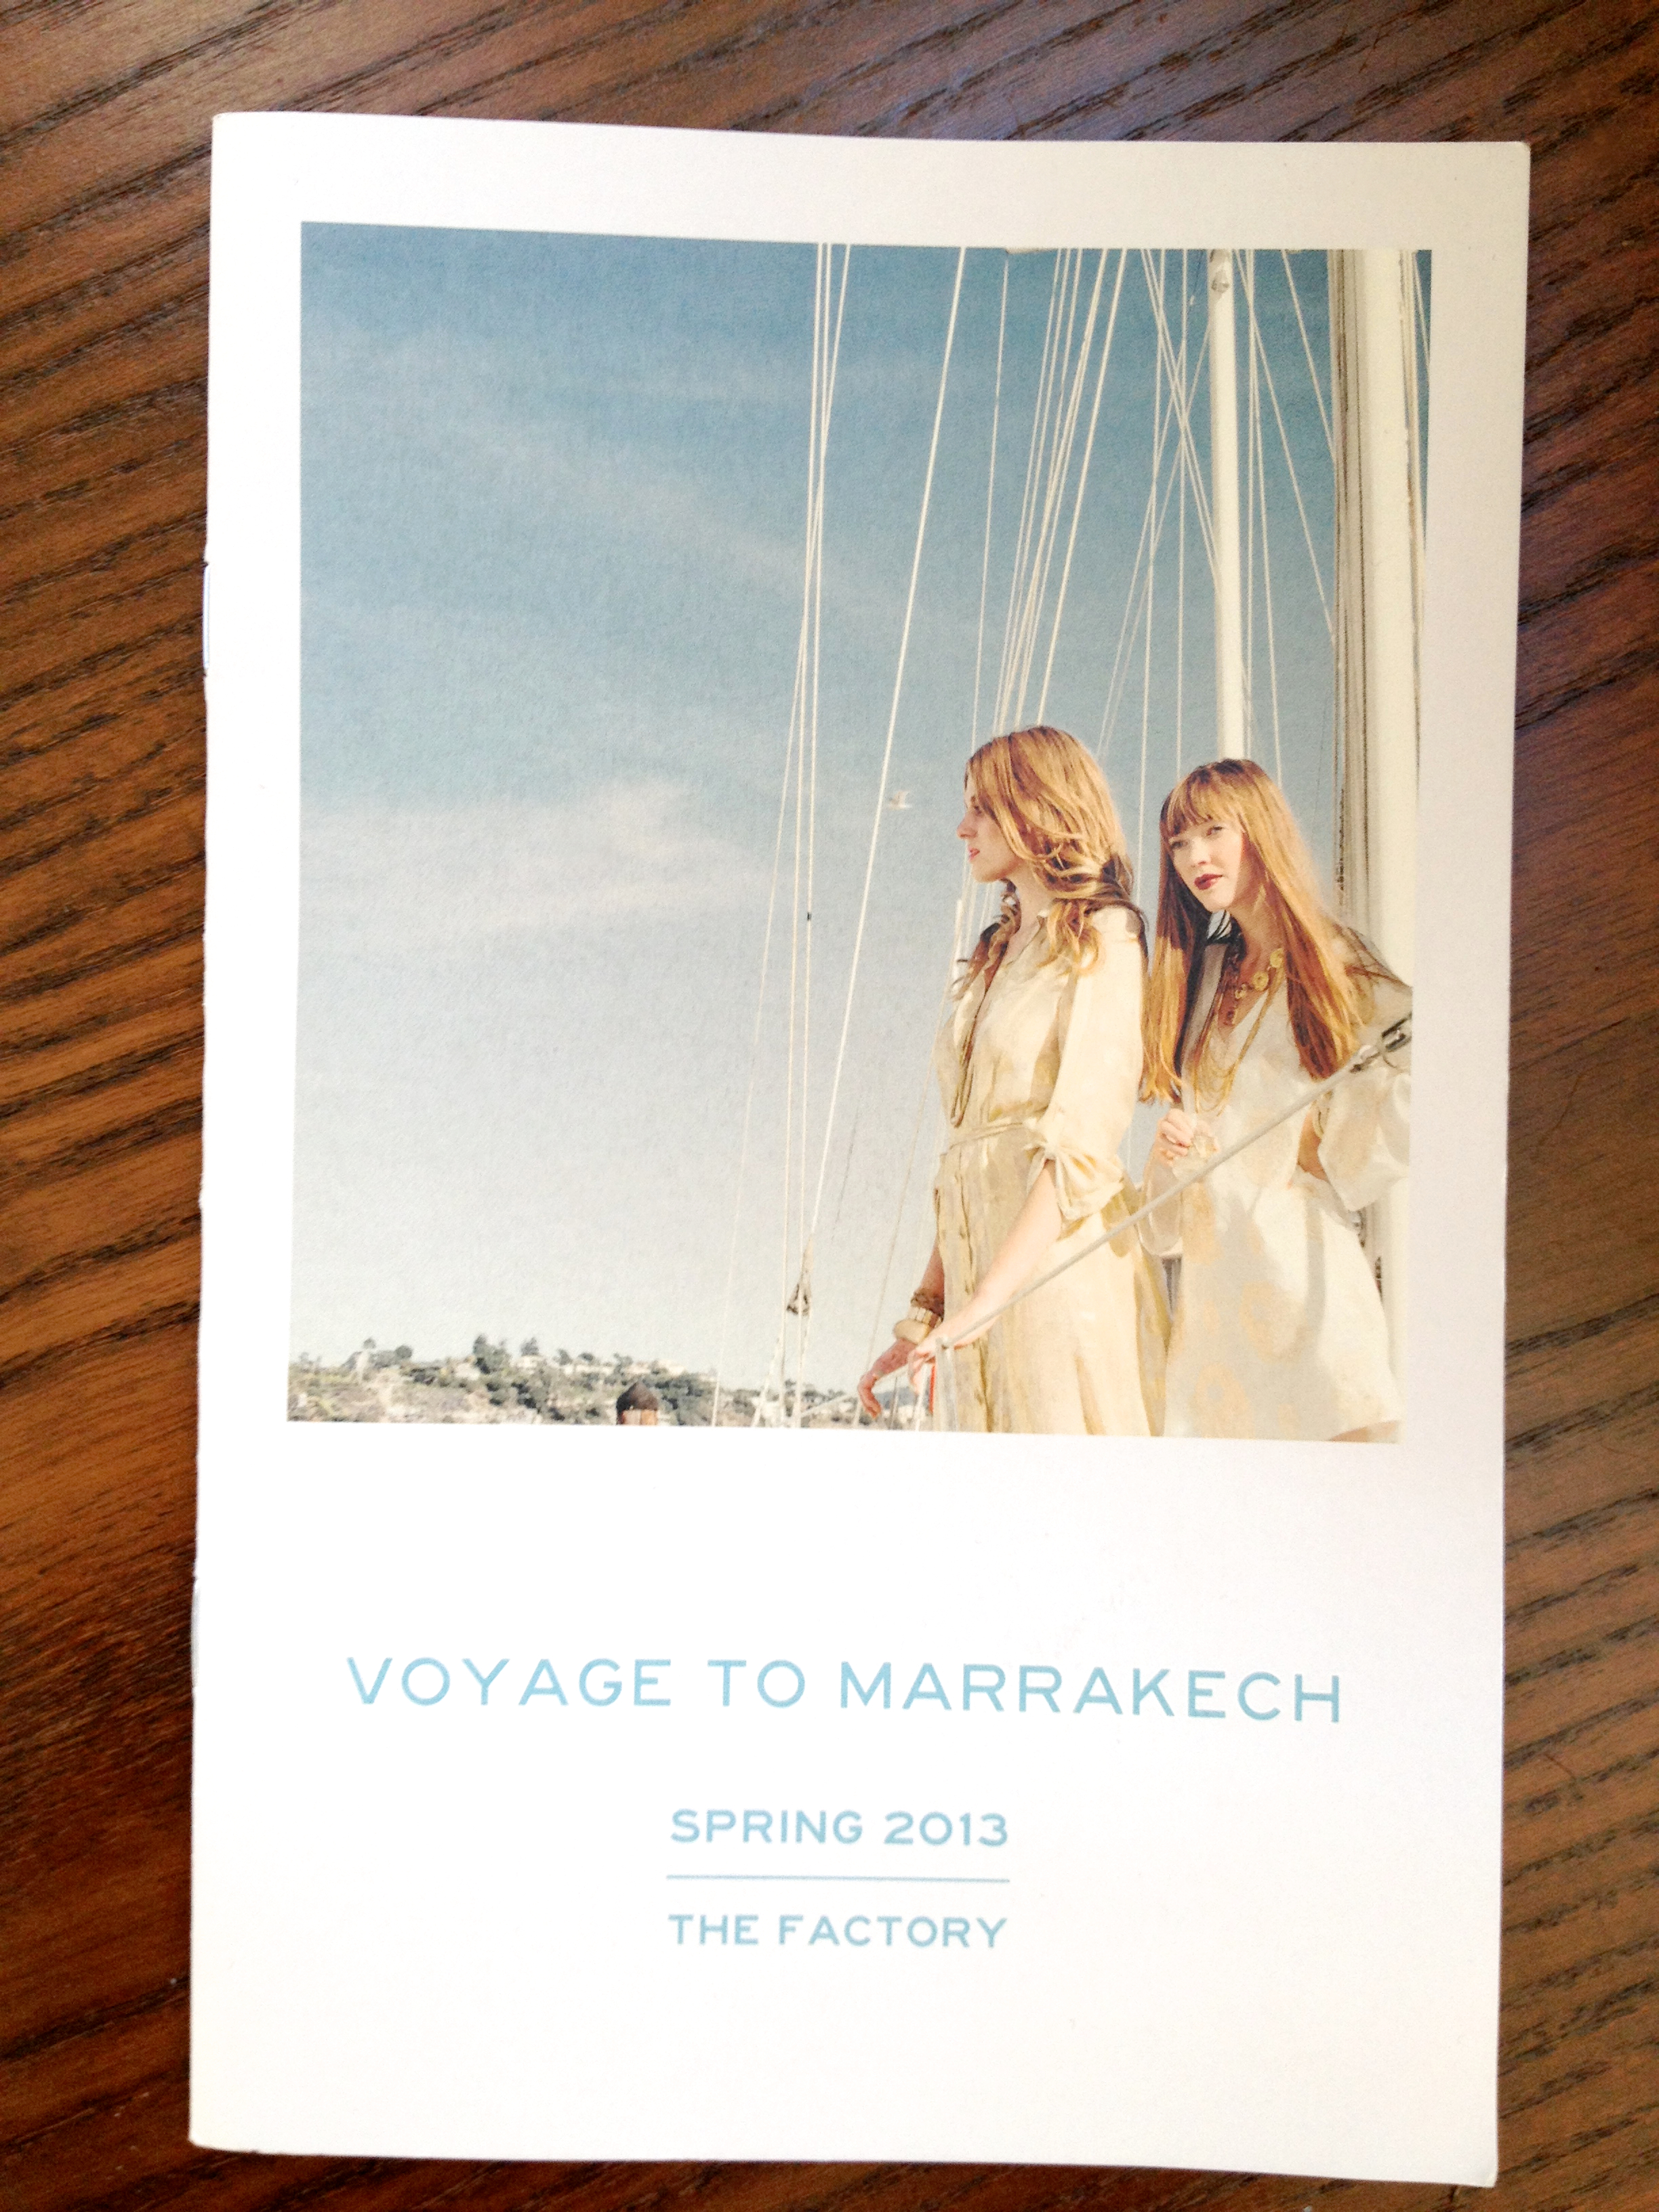 Voyage to Marrakech -  The Factory  Lookbook, Spring '13